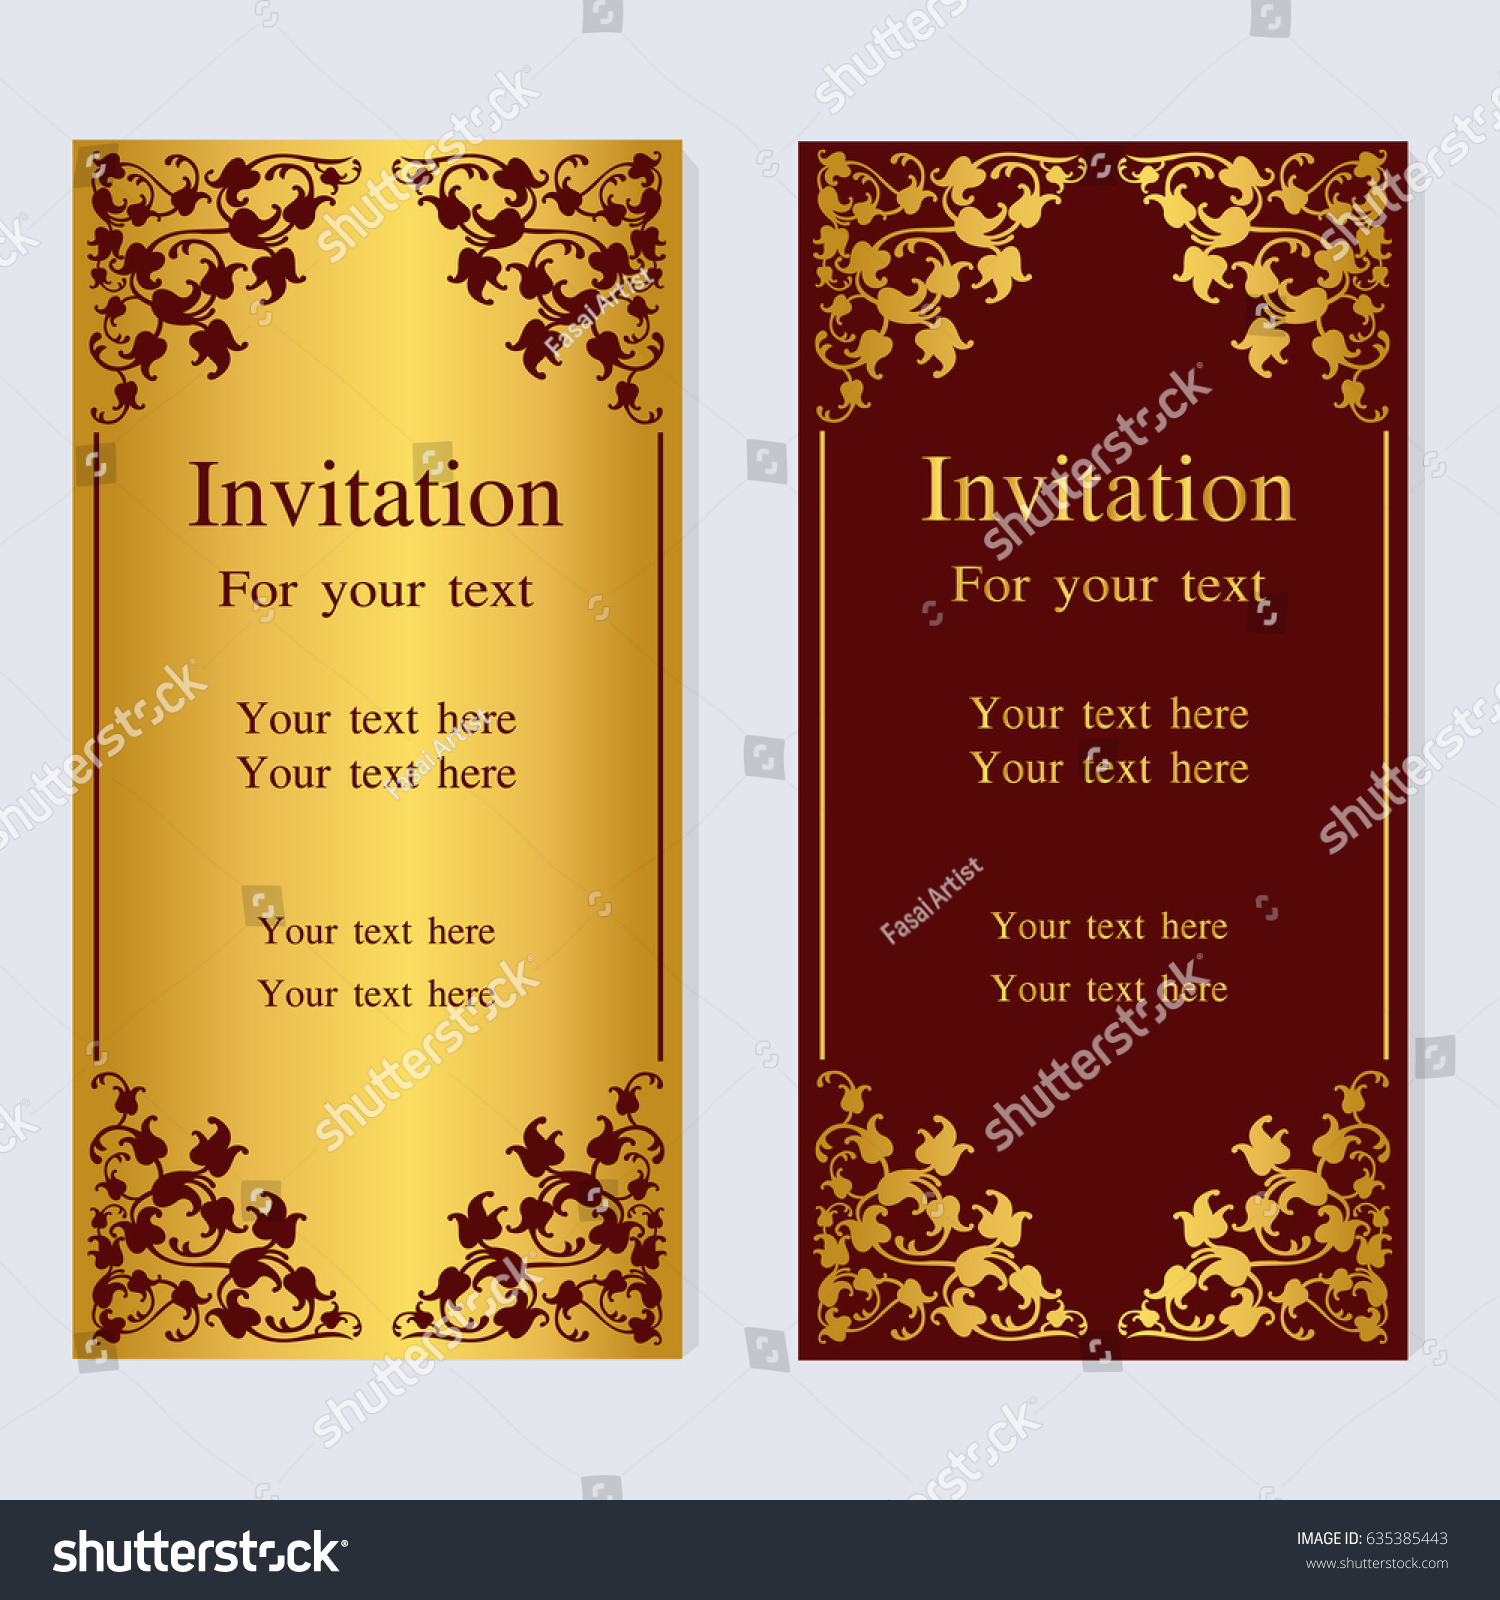 Vintage Invitation Wedding Cards Stock Vector (Royalty Free ...